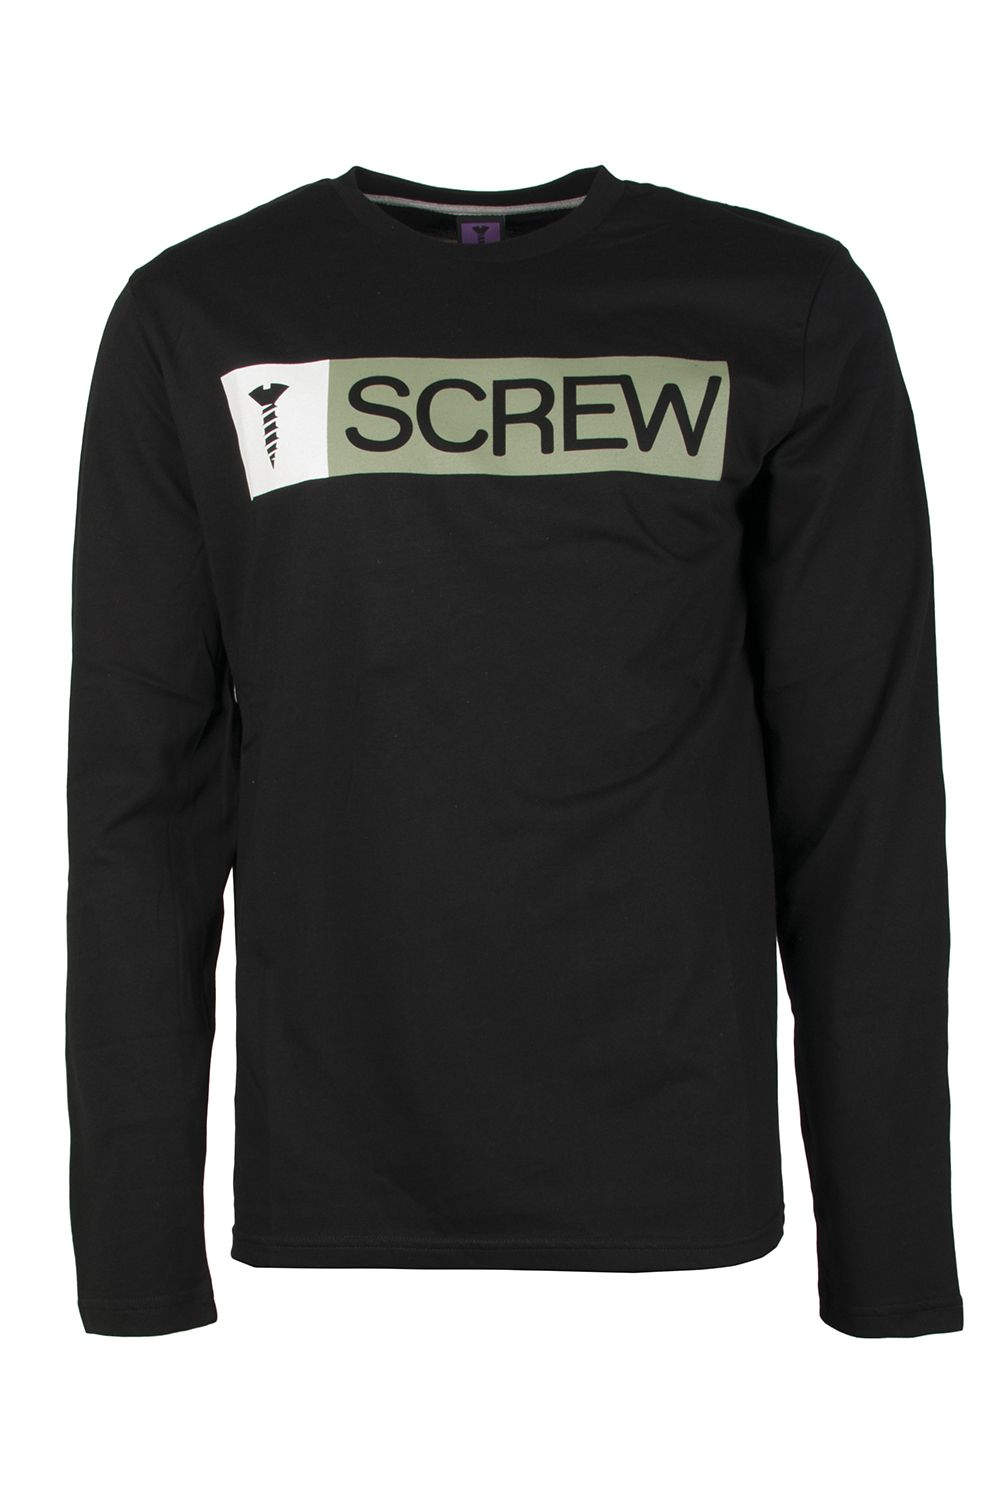 L-Sleeve Screw SUPER LOGO Black